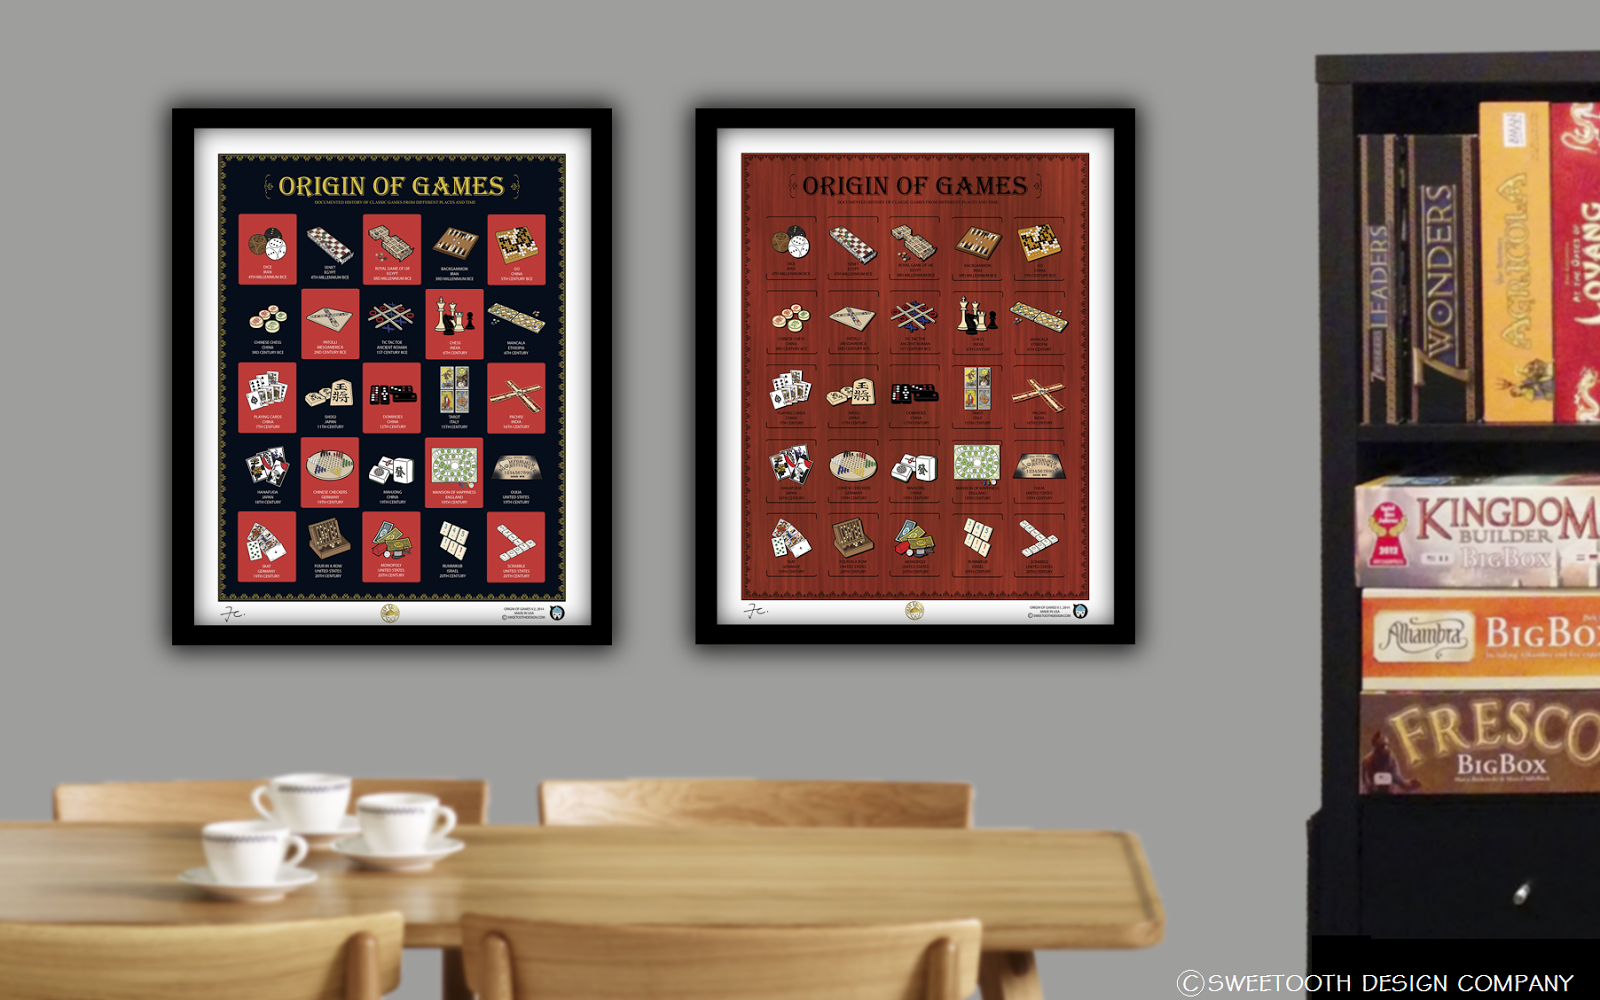 https://www.kickstarter.com/projects/sweetoothdesign/origin-of-games-illustrated-poster-of-classic-game?ref=nav_search